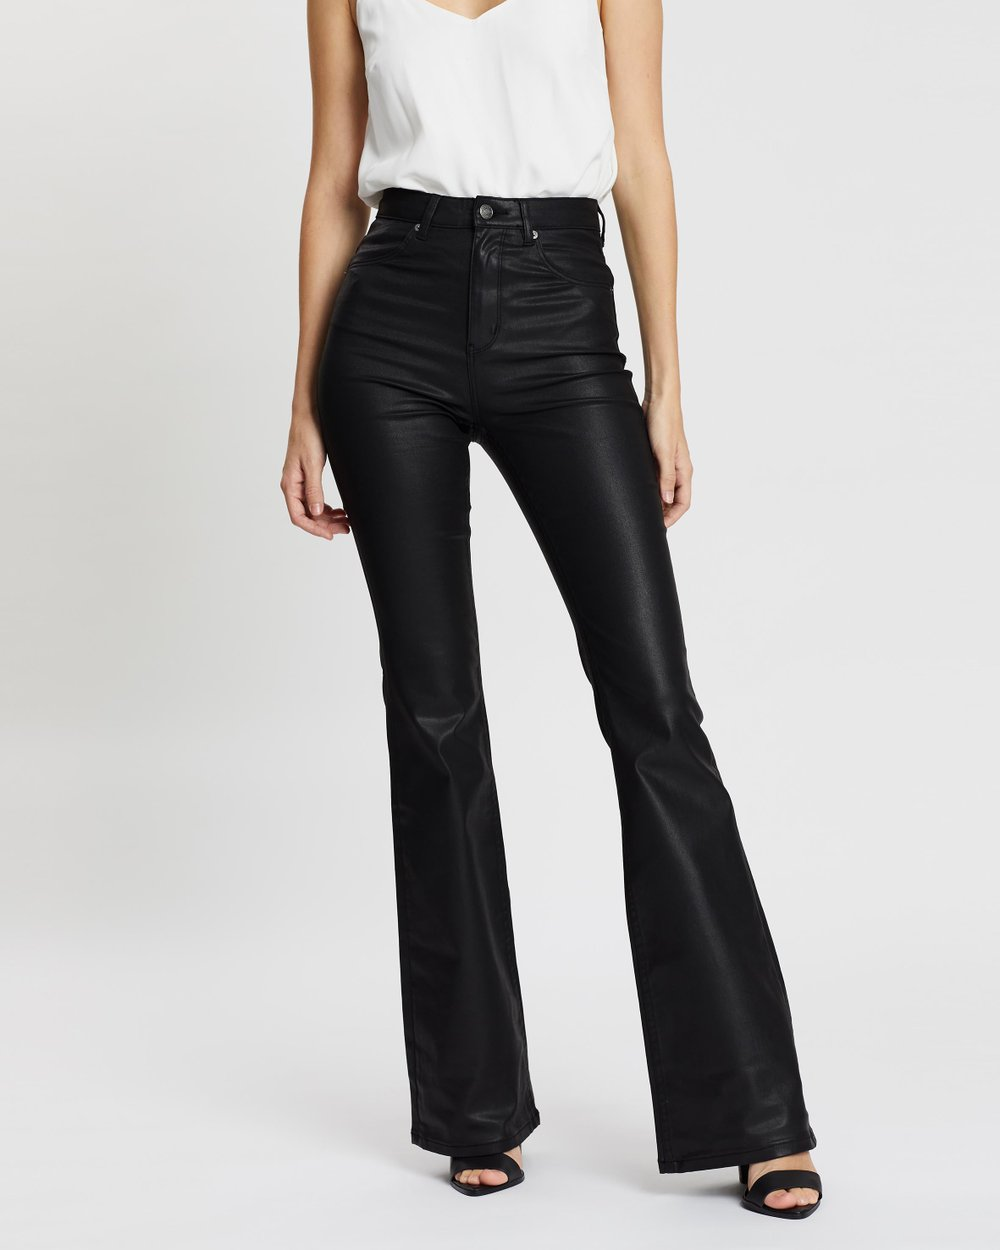 The Avengers Jeans By Sass Bide Online The Iconic Australia